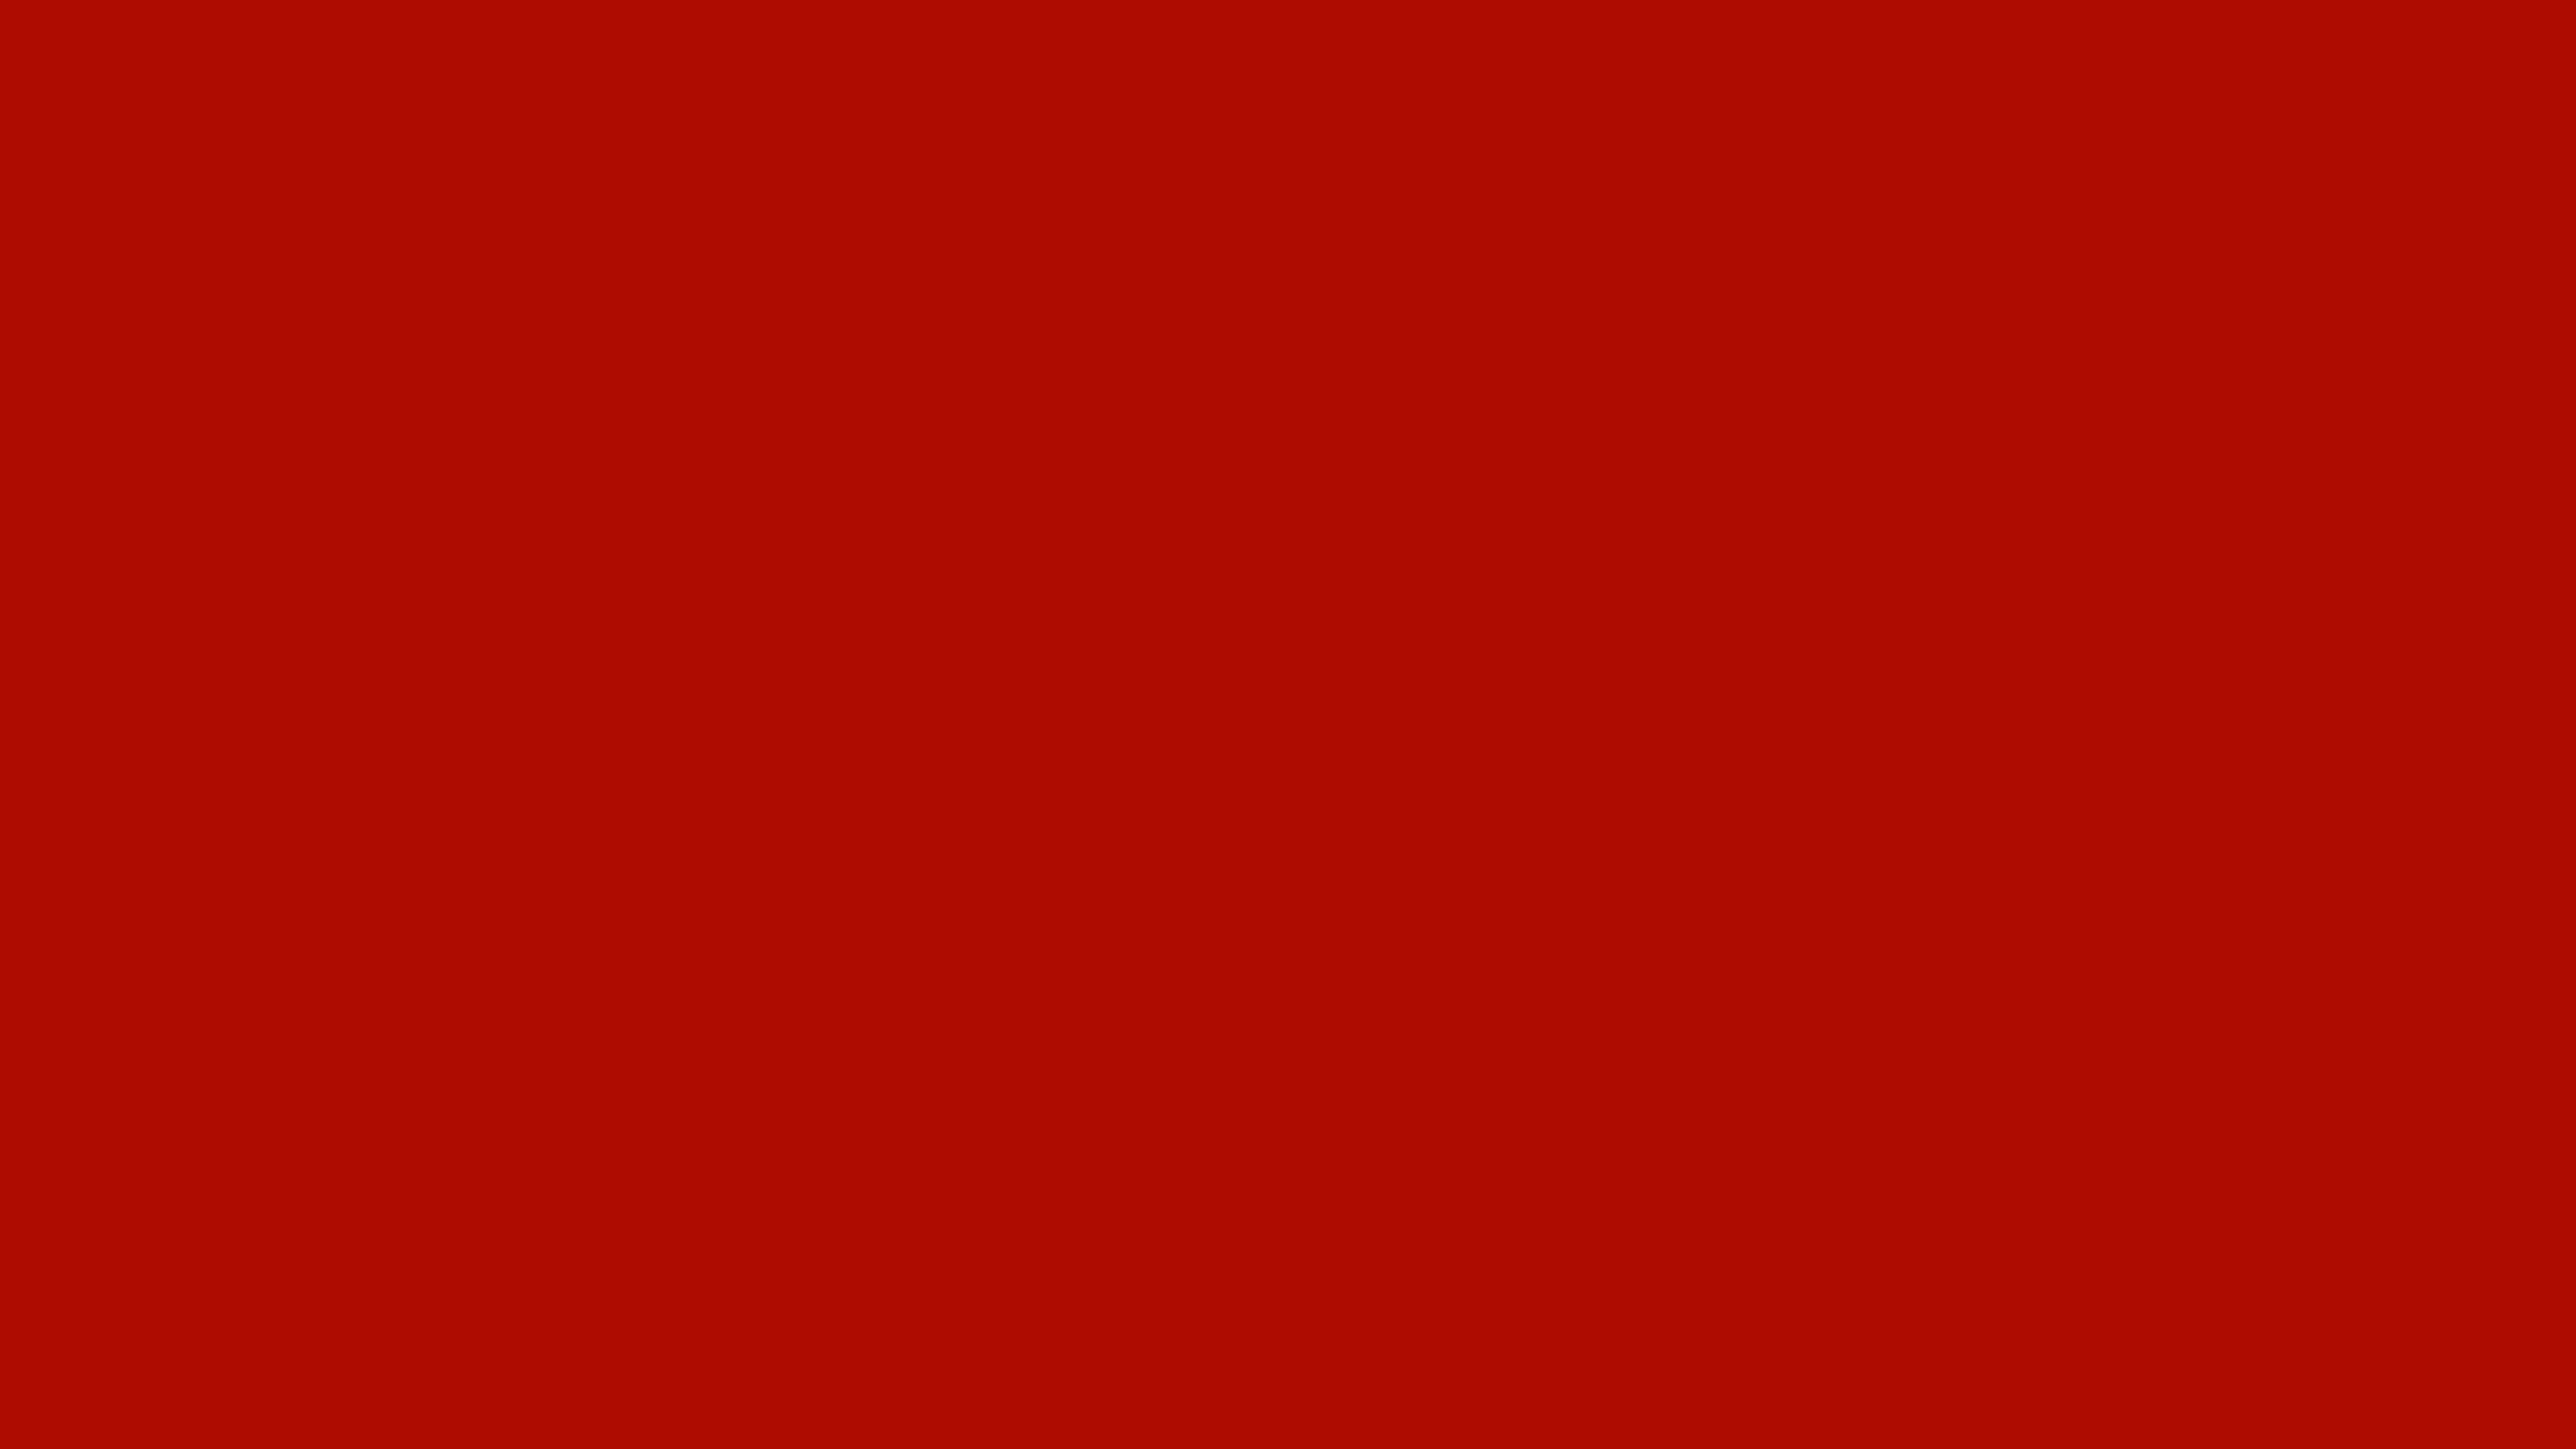 4096x2304 Mordant Red 19 Solid Color Background